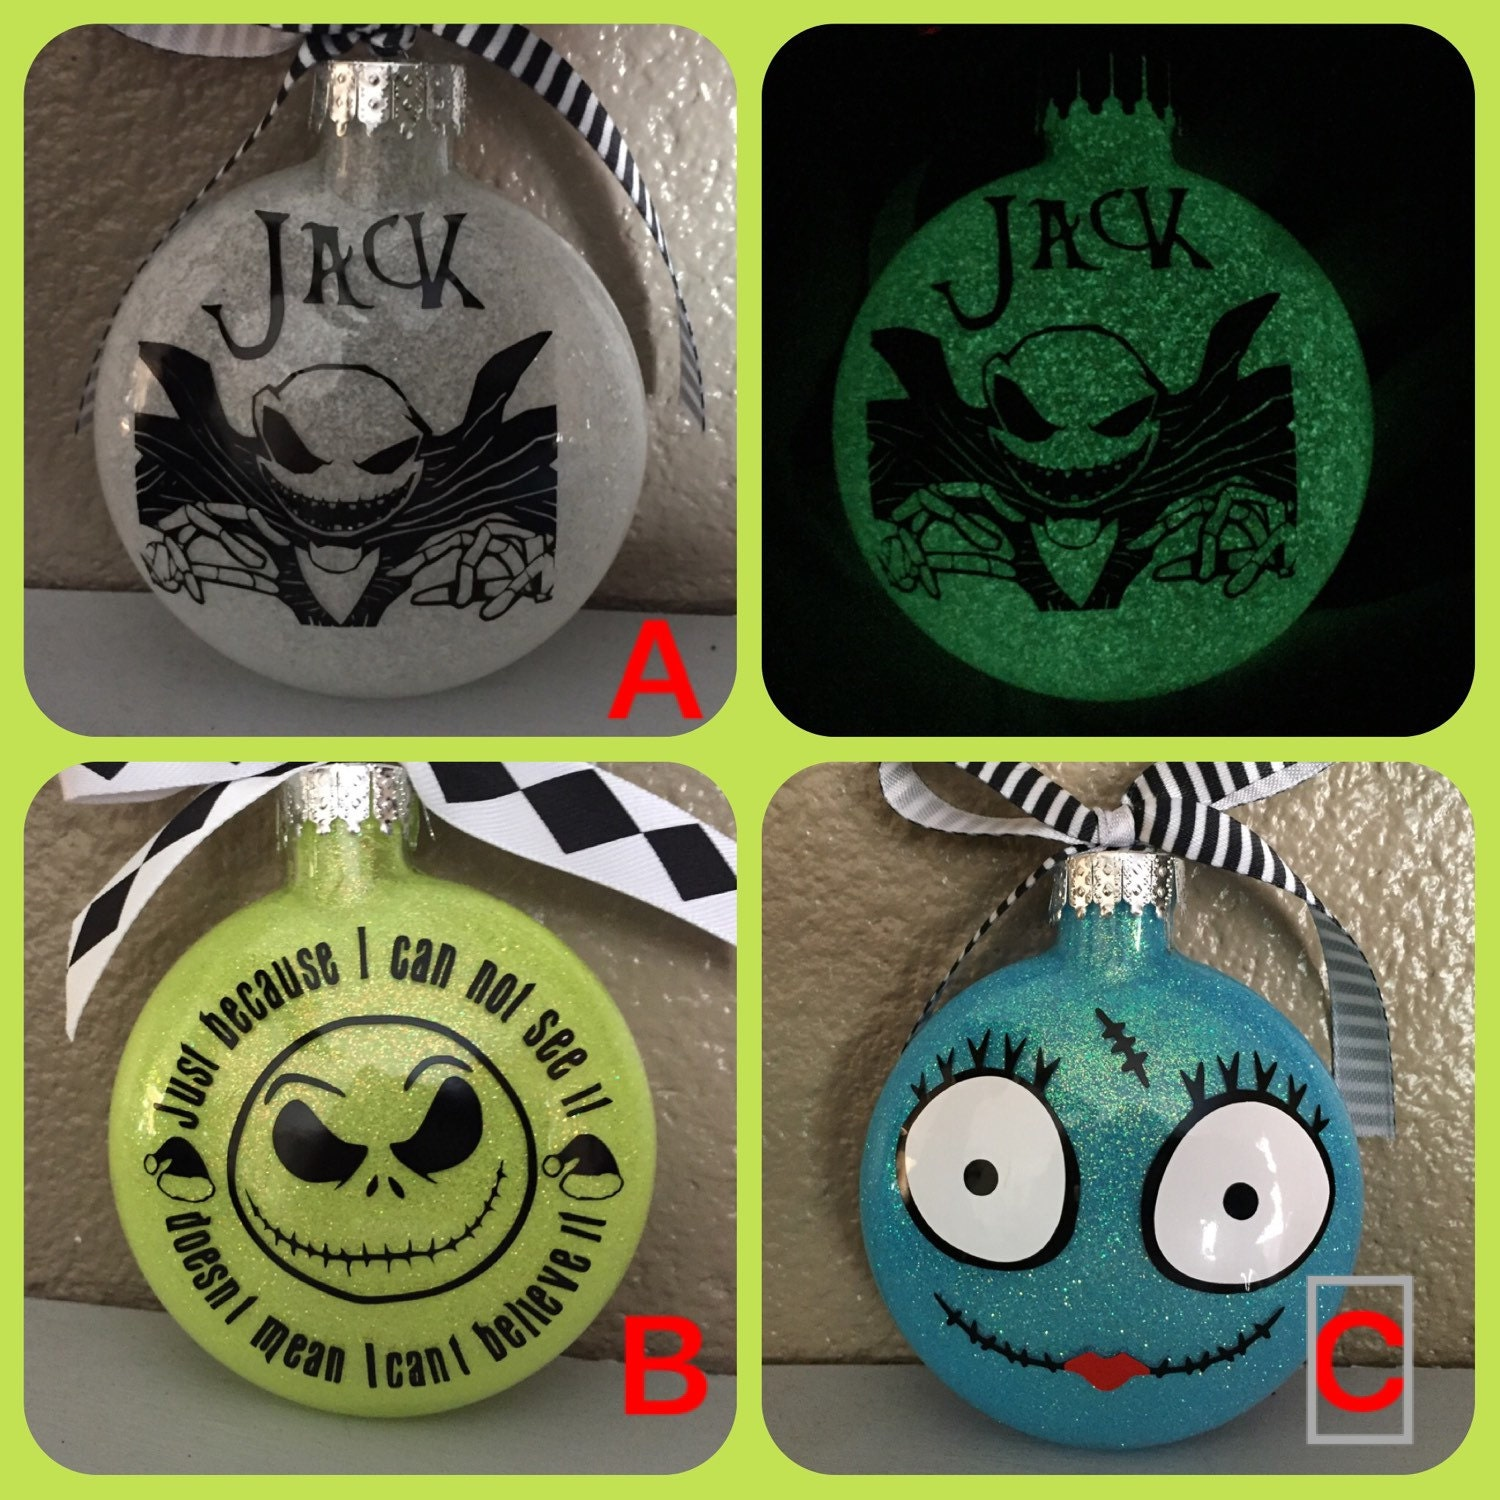 nightmare before christmas ornaments jack ornaments sally ornaments corpse bride jack and sally ornament jack skeleton glow in dark - Jack Skeleton Christmas Decorations